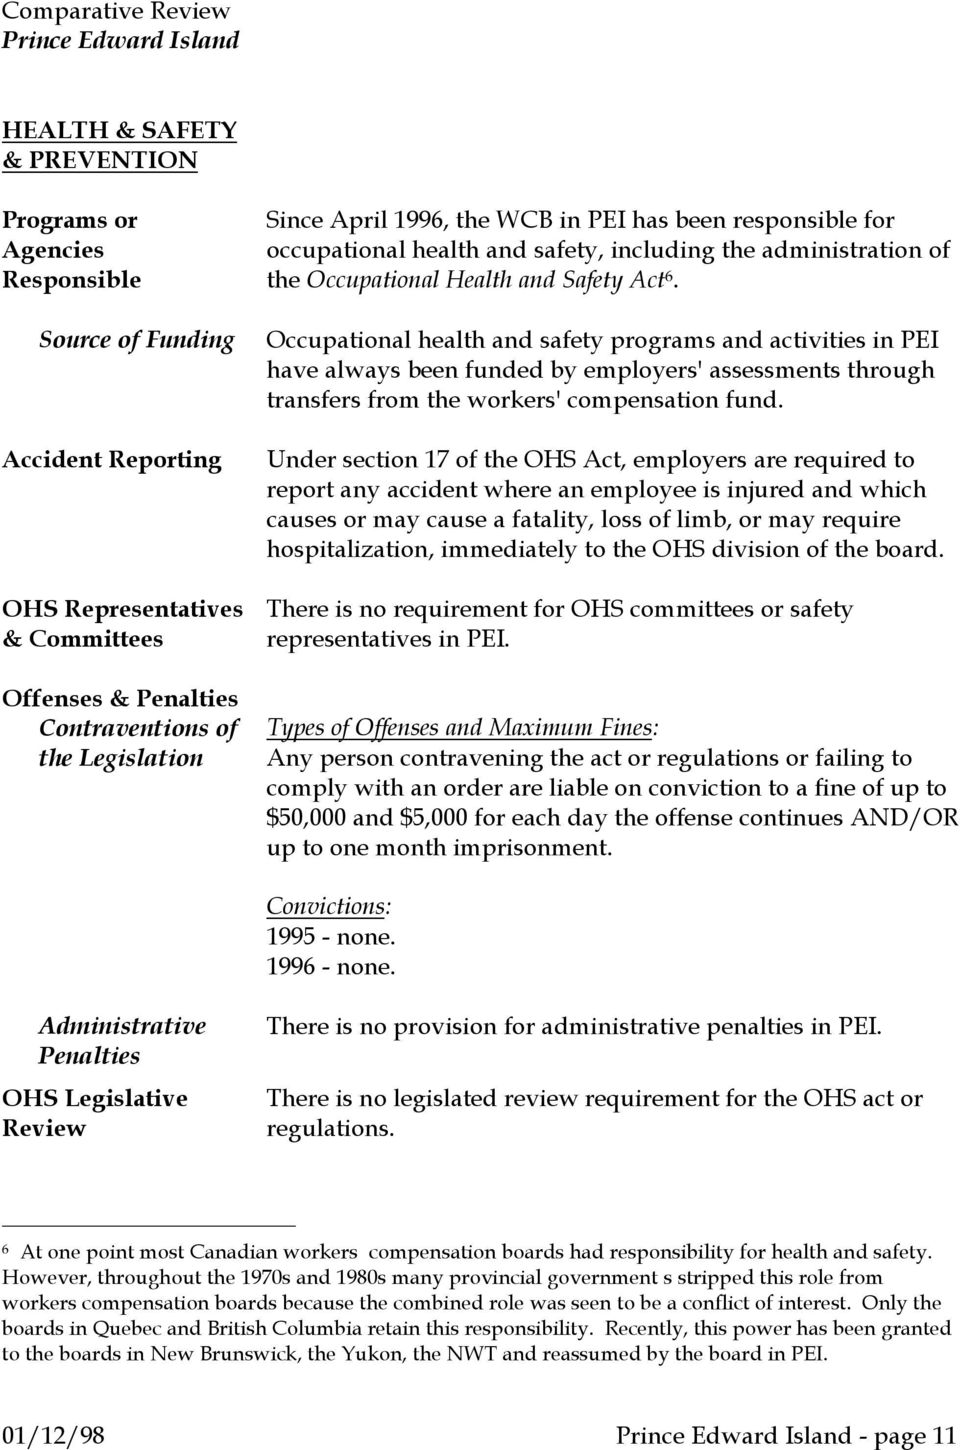 Occupational health and safety programs and activities in PEI have always been funded by employers' assessments through transfers from the workers' compensation fund.